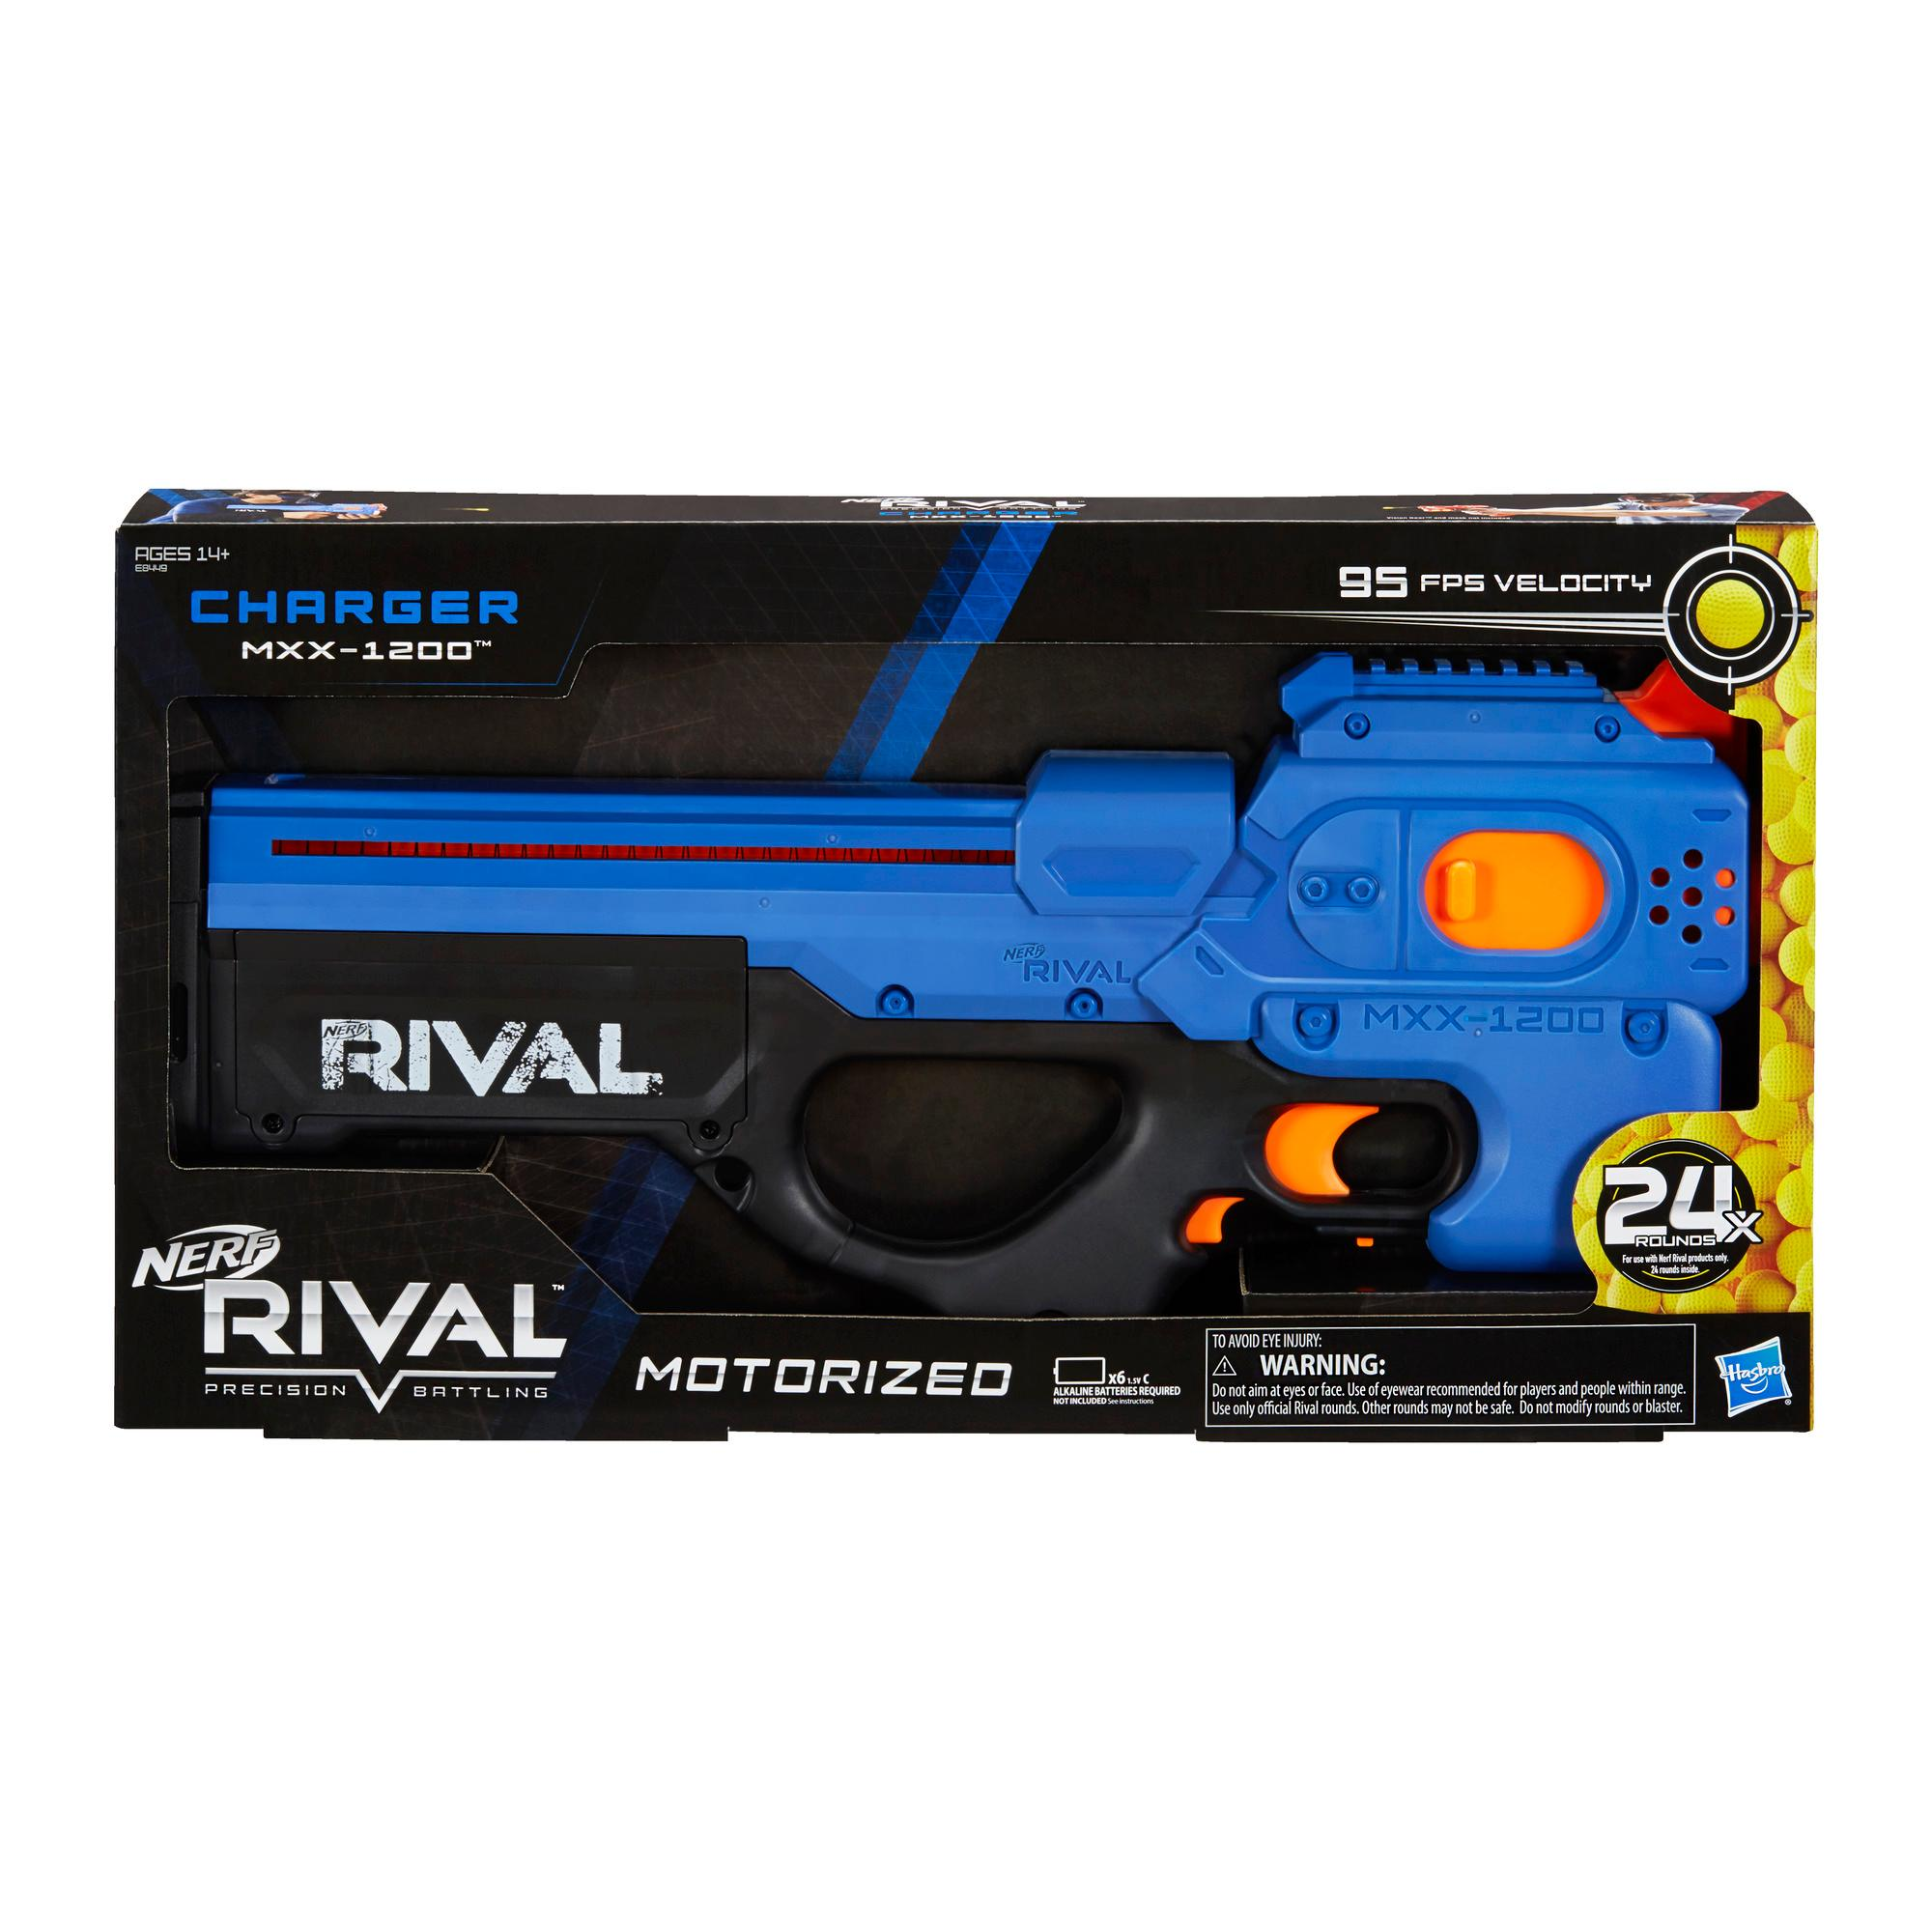 Nerf Rival Charger MXX-1200 Motorized Blaster -- 12-Round Capacity, 95 FPS, 24 Official Nerf Rival Rounds -- Team Blue